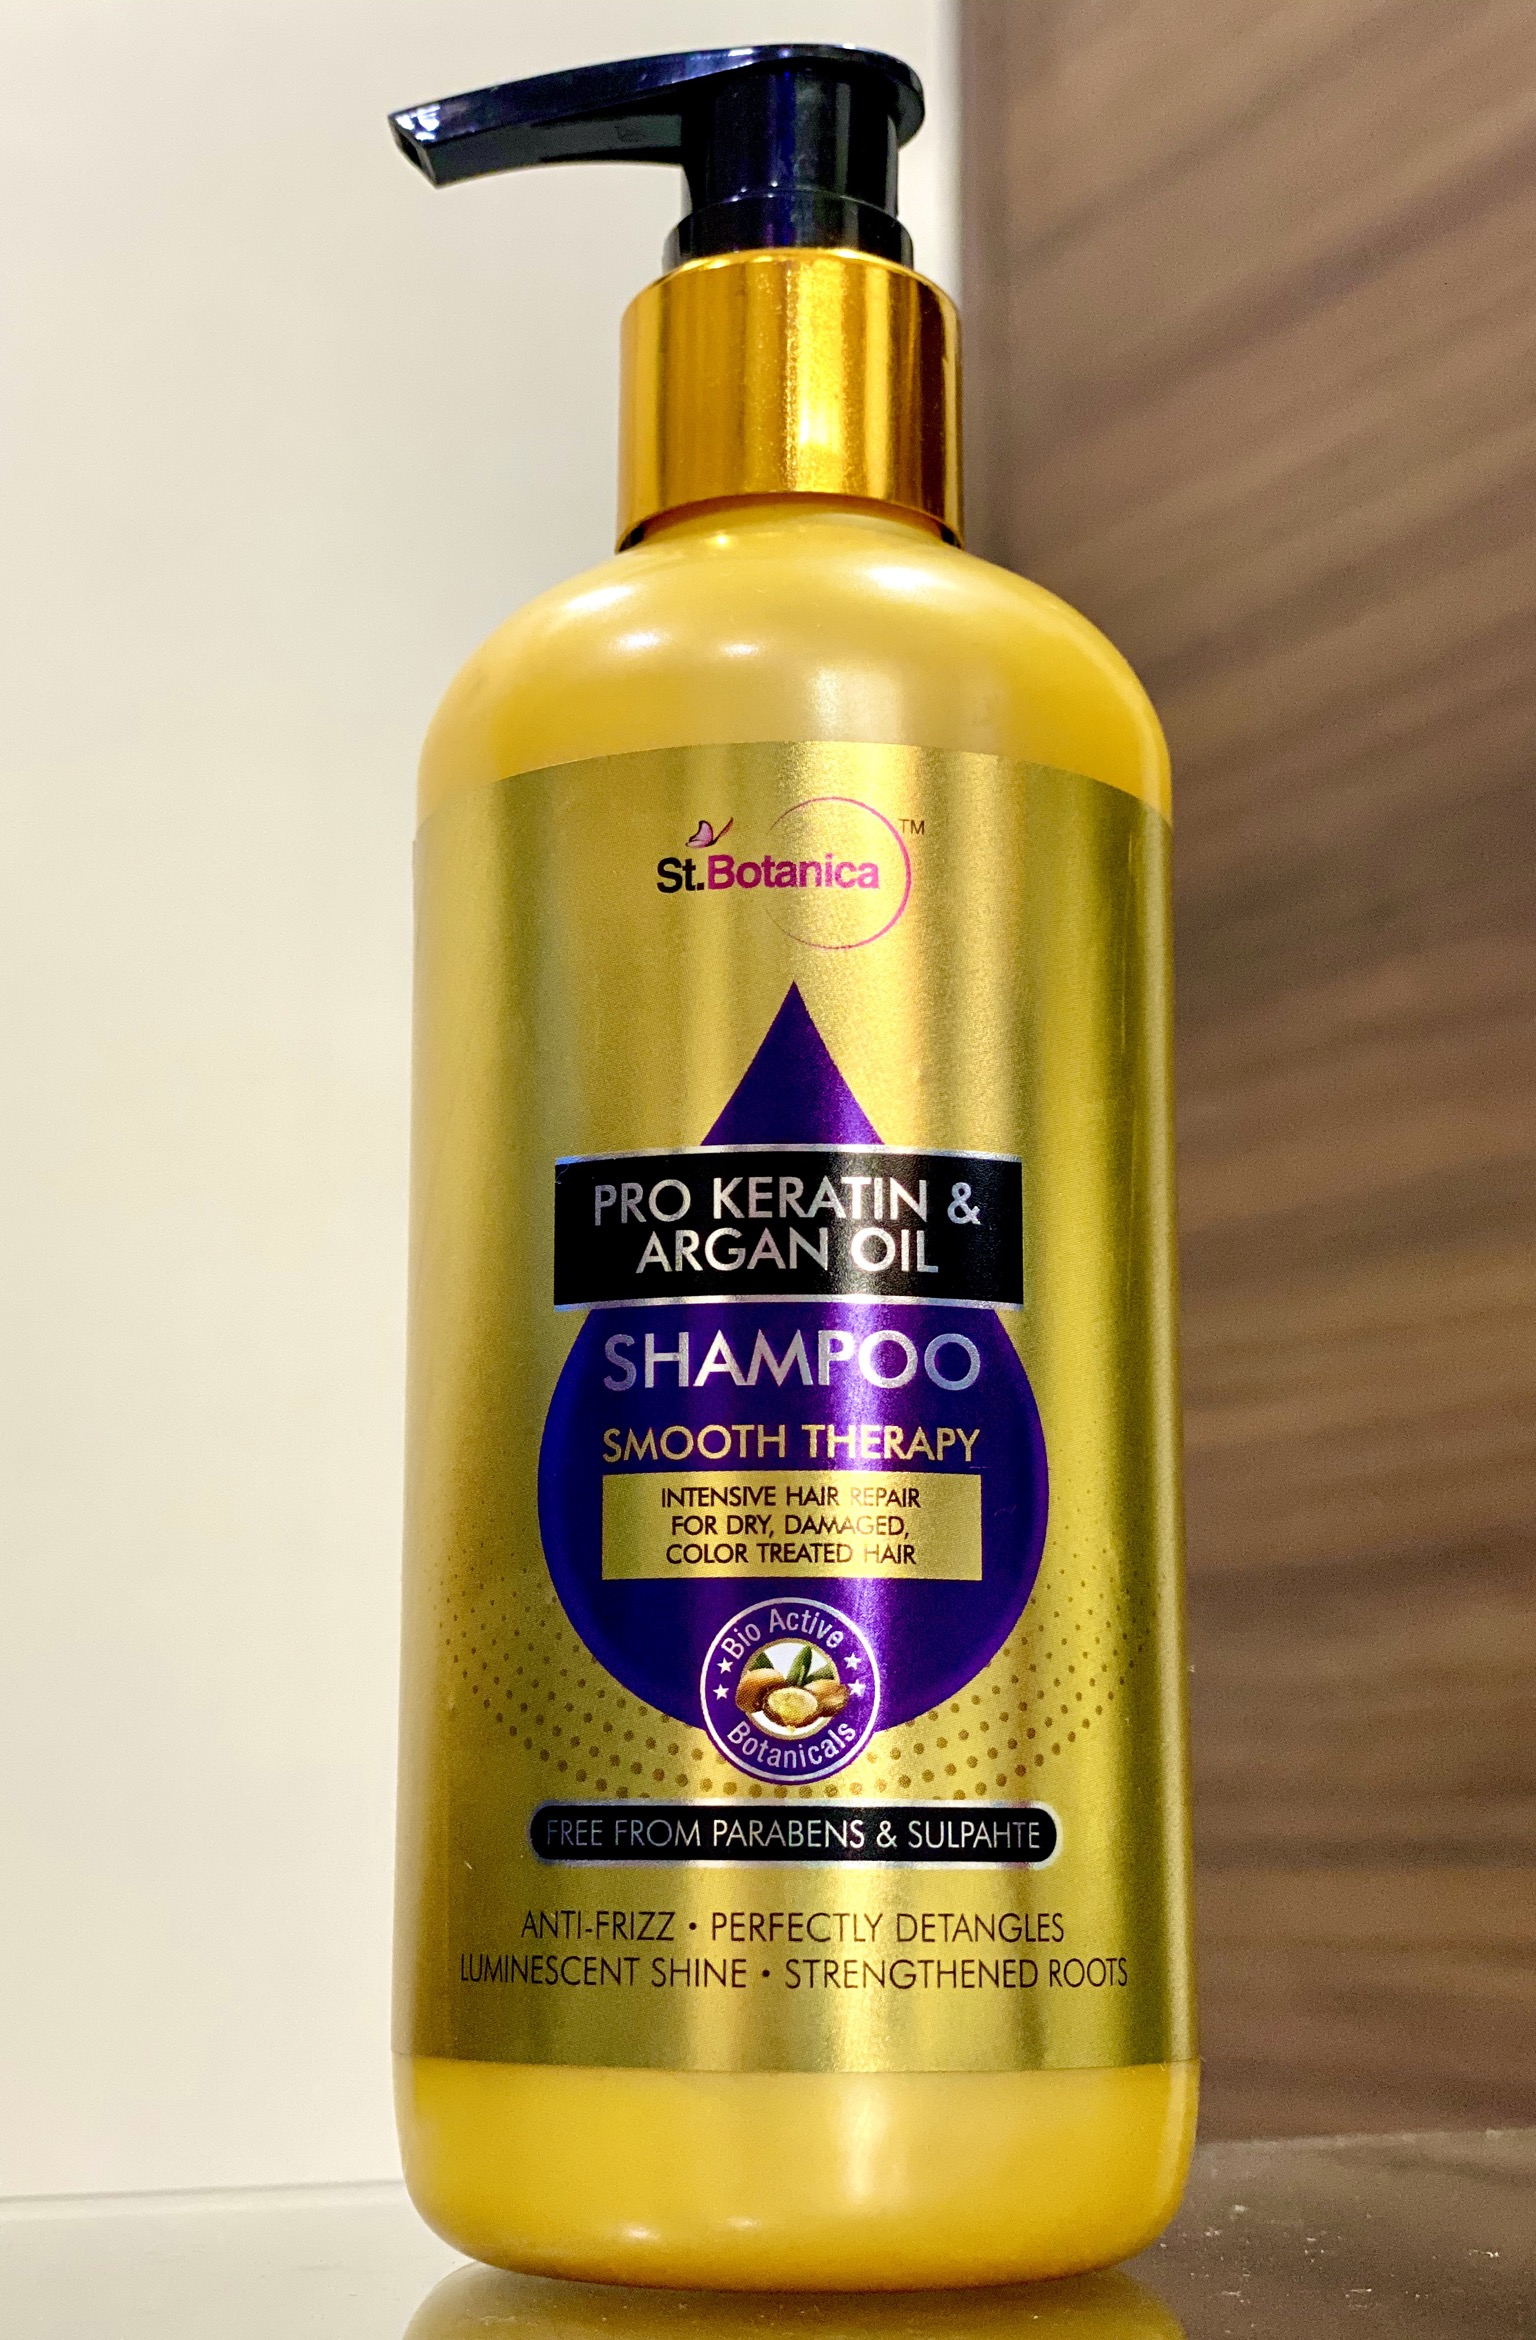 St.Botanica Pro Keratin & Argan Oil Shampoo-WONDERFUL PRODUCT-By yogita_parmar